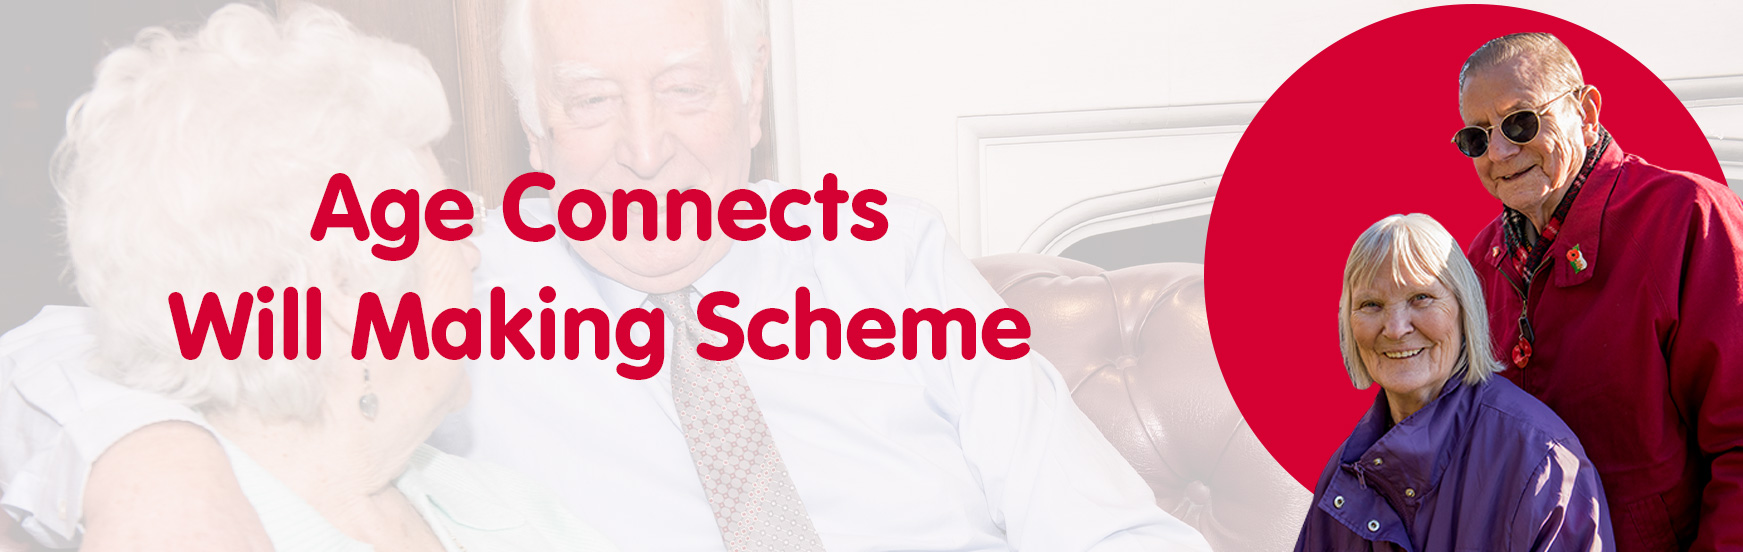 age connects will making scheme